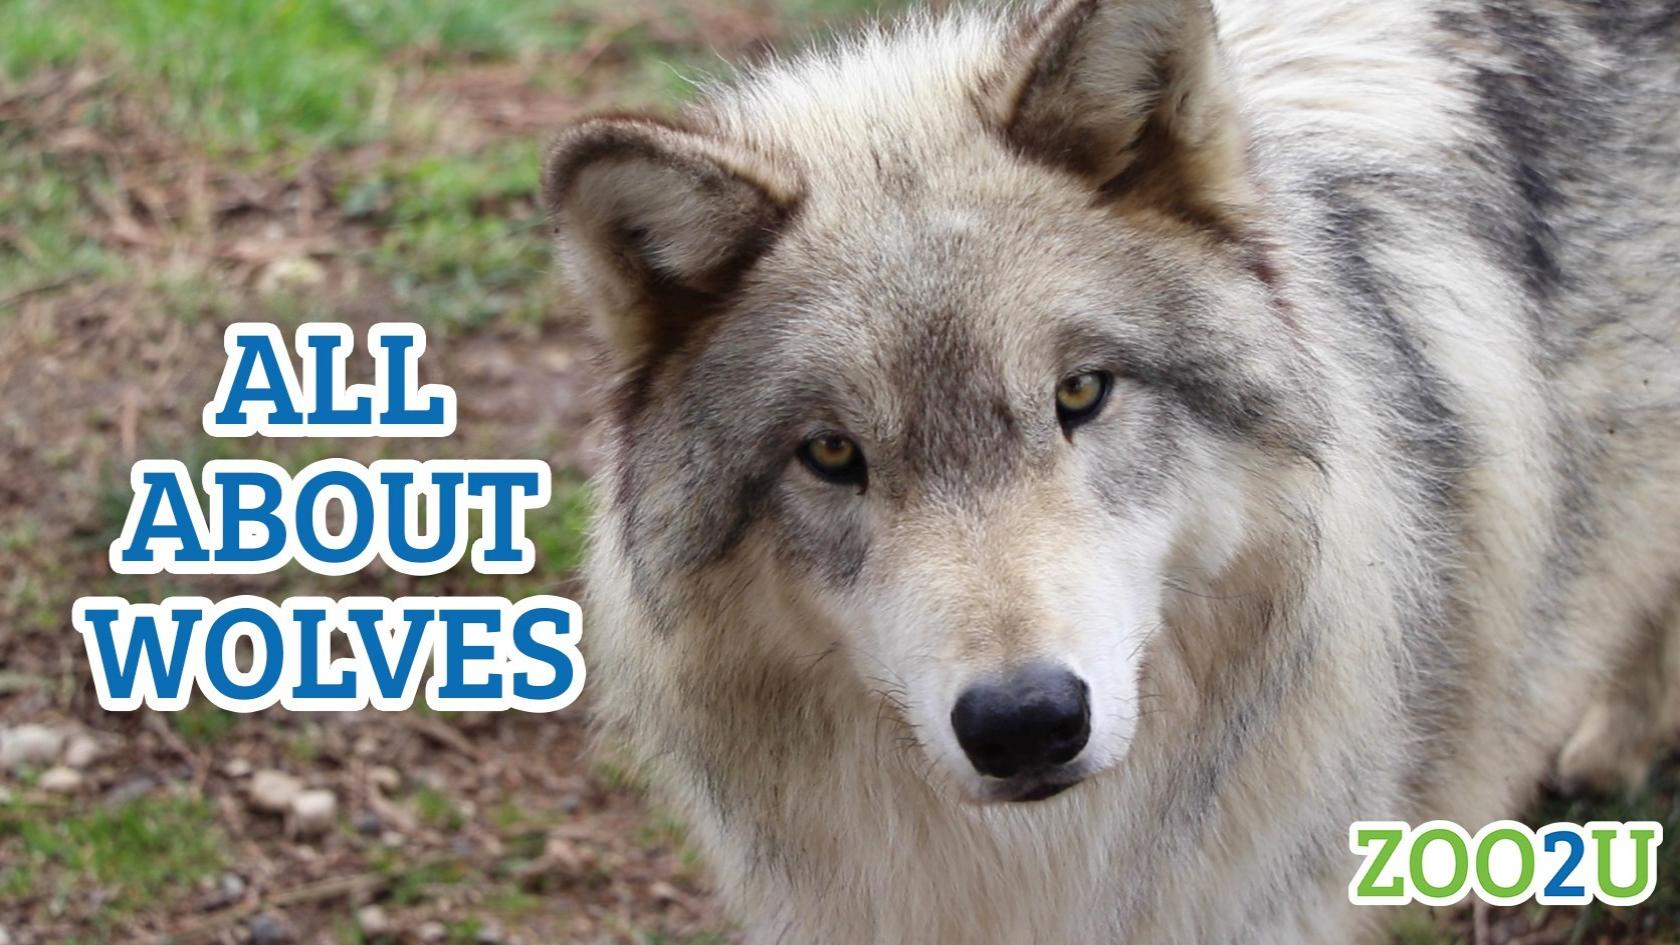 all about wolves button